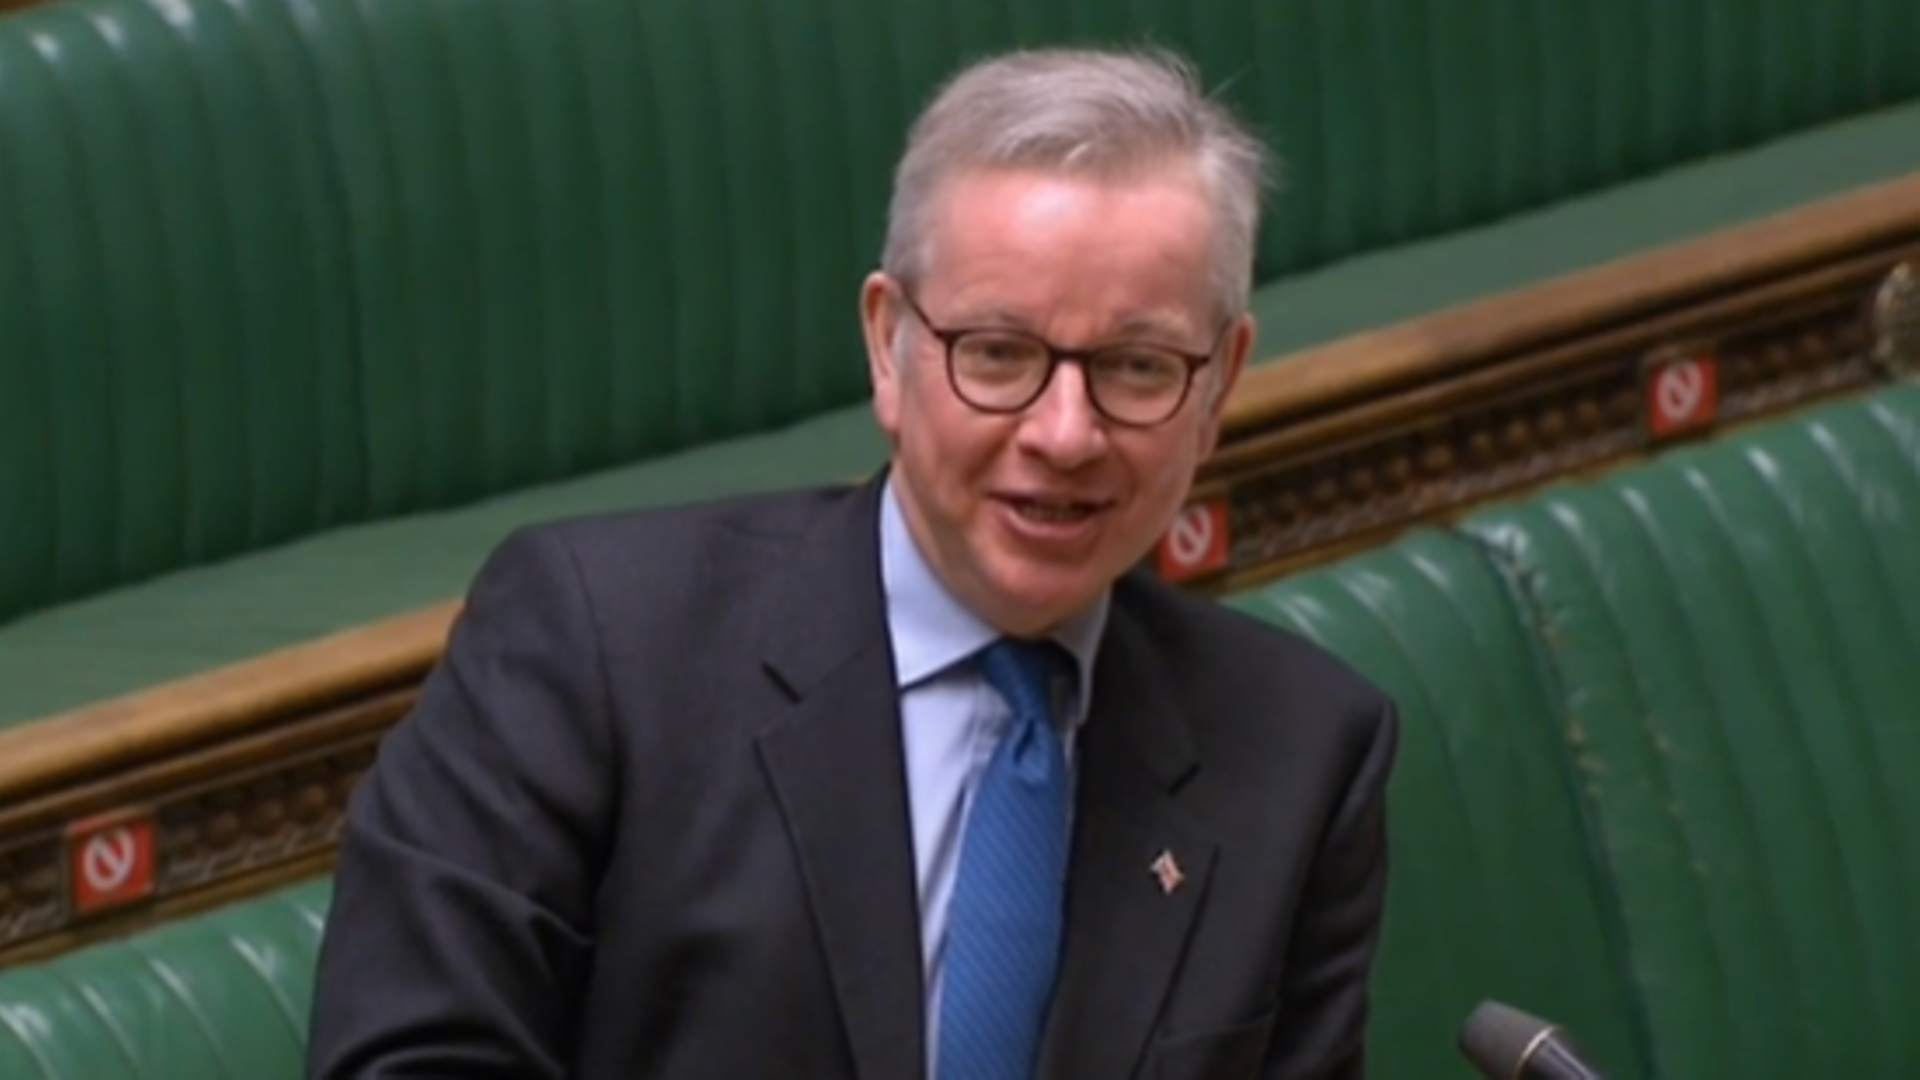 Michael Gove fields questions in the House of Commons - Credit: Parliament Live